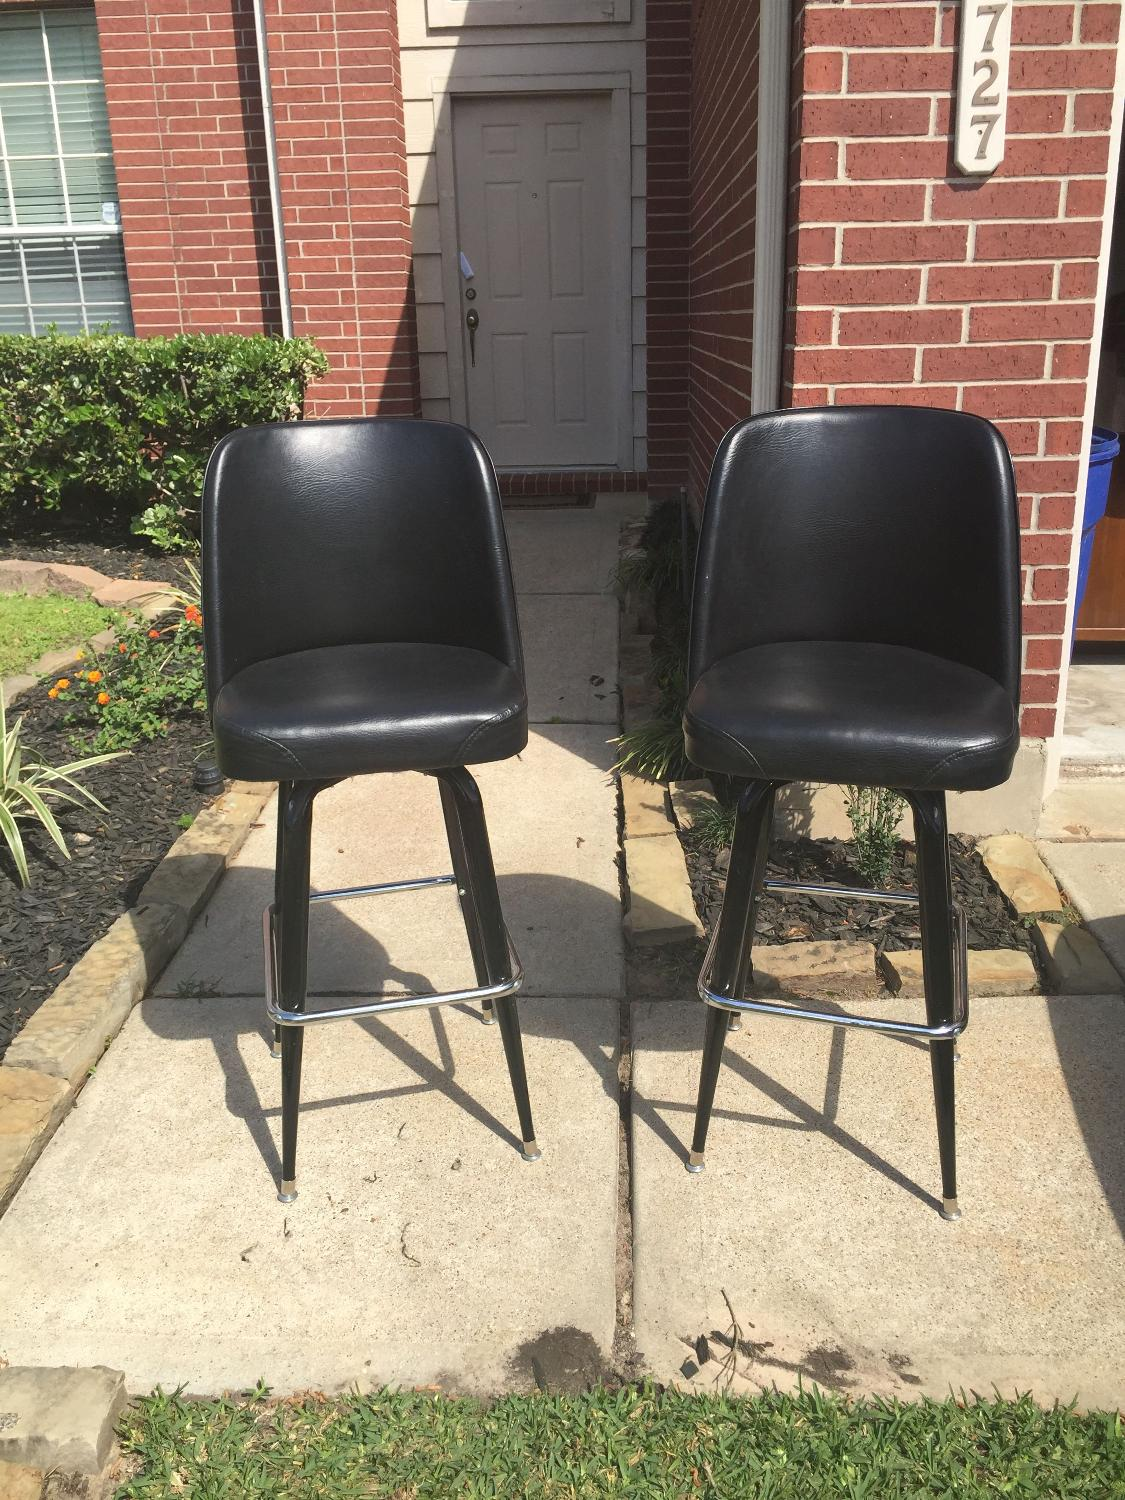 Best Leather Black Bar Stool Chairs For Sale In Cypress